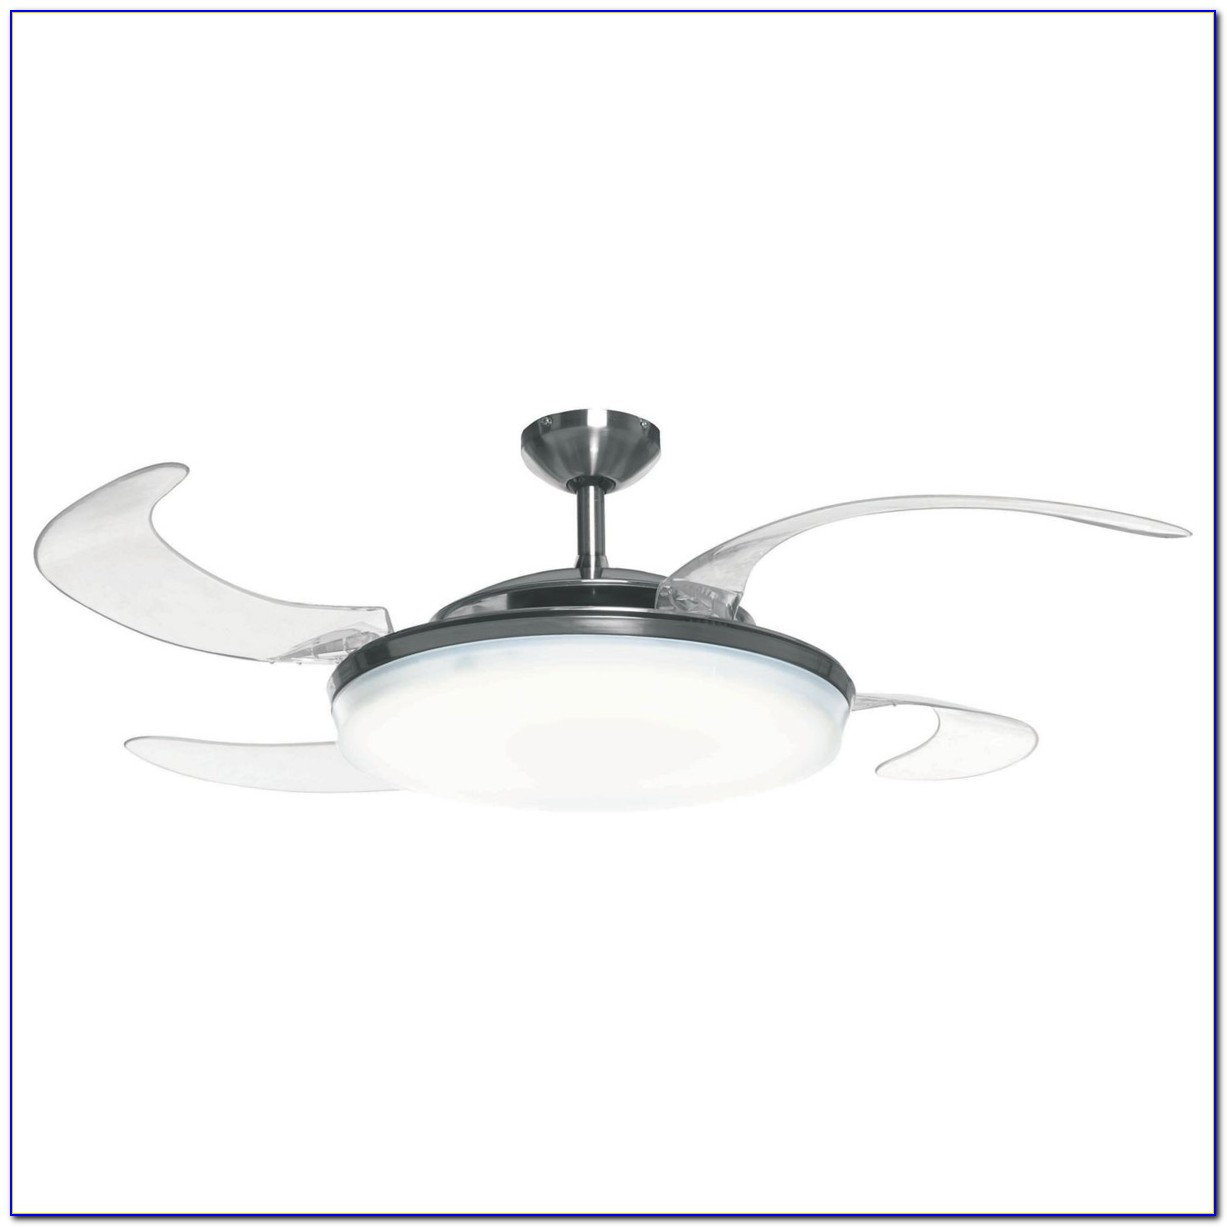 Retractable Ceiling Fan With Light India